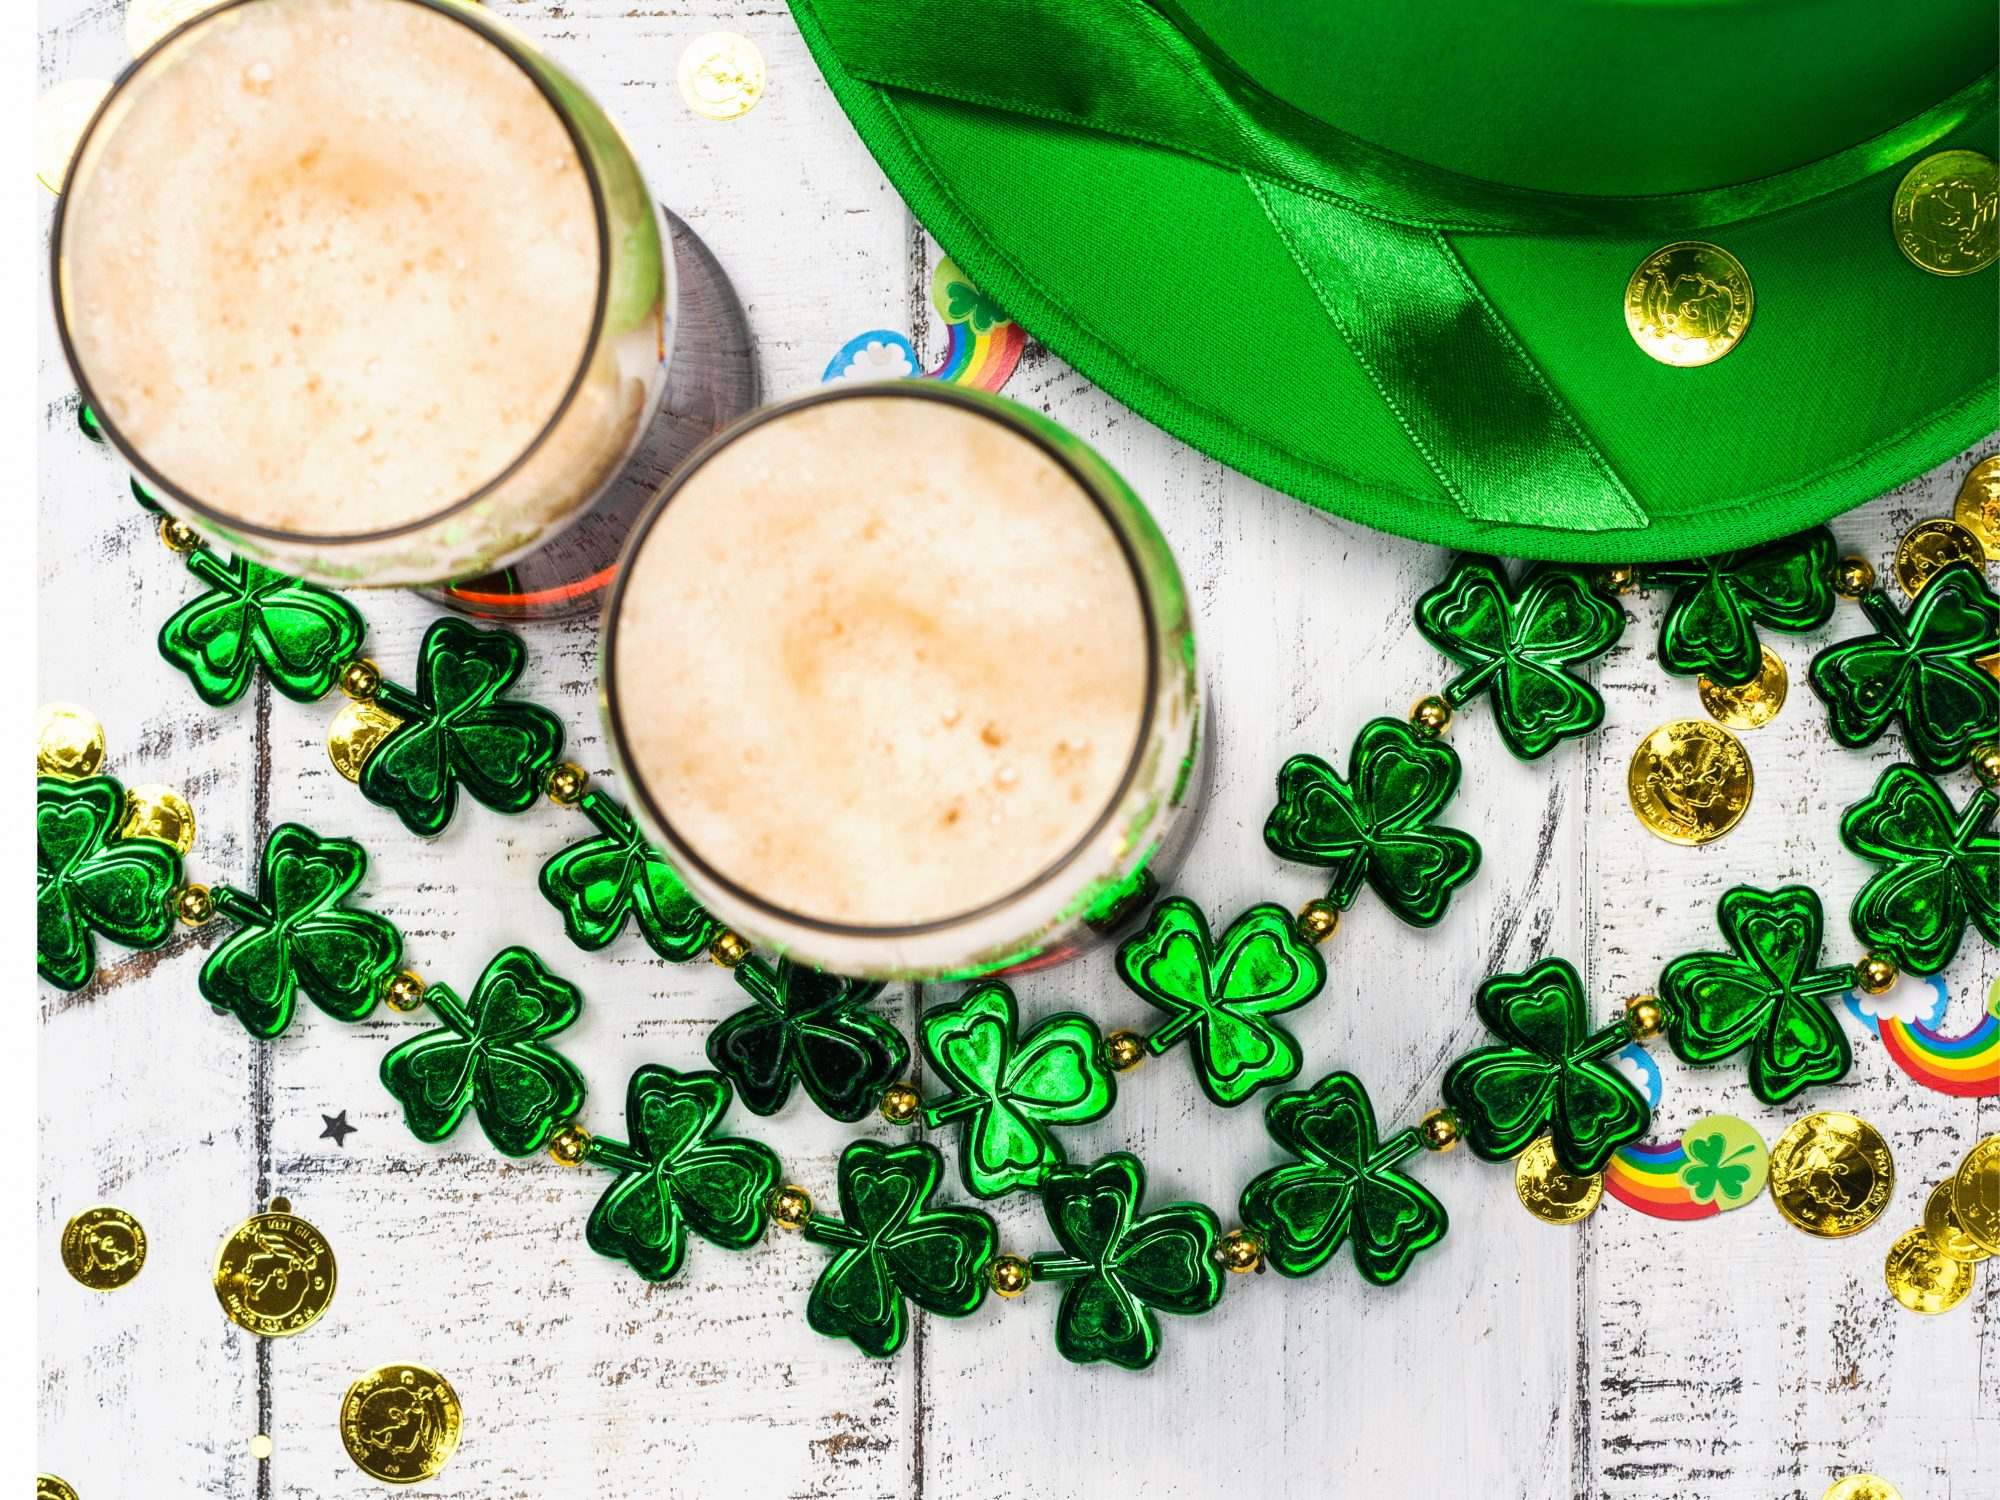 St Patrick's Day memes and quotes - decorative accessories for St. Patrick's Day